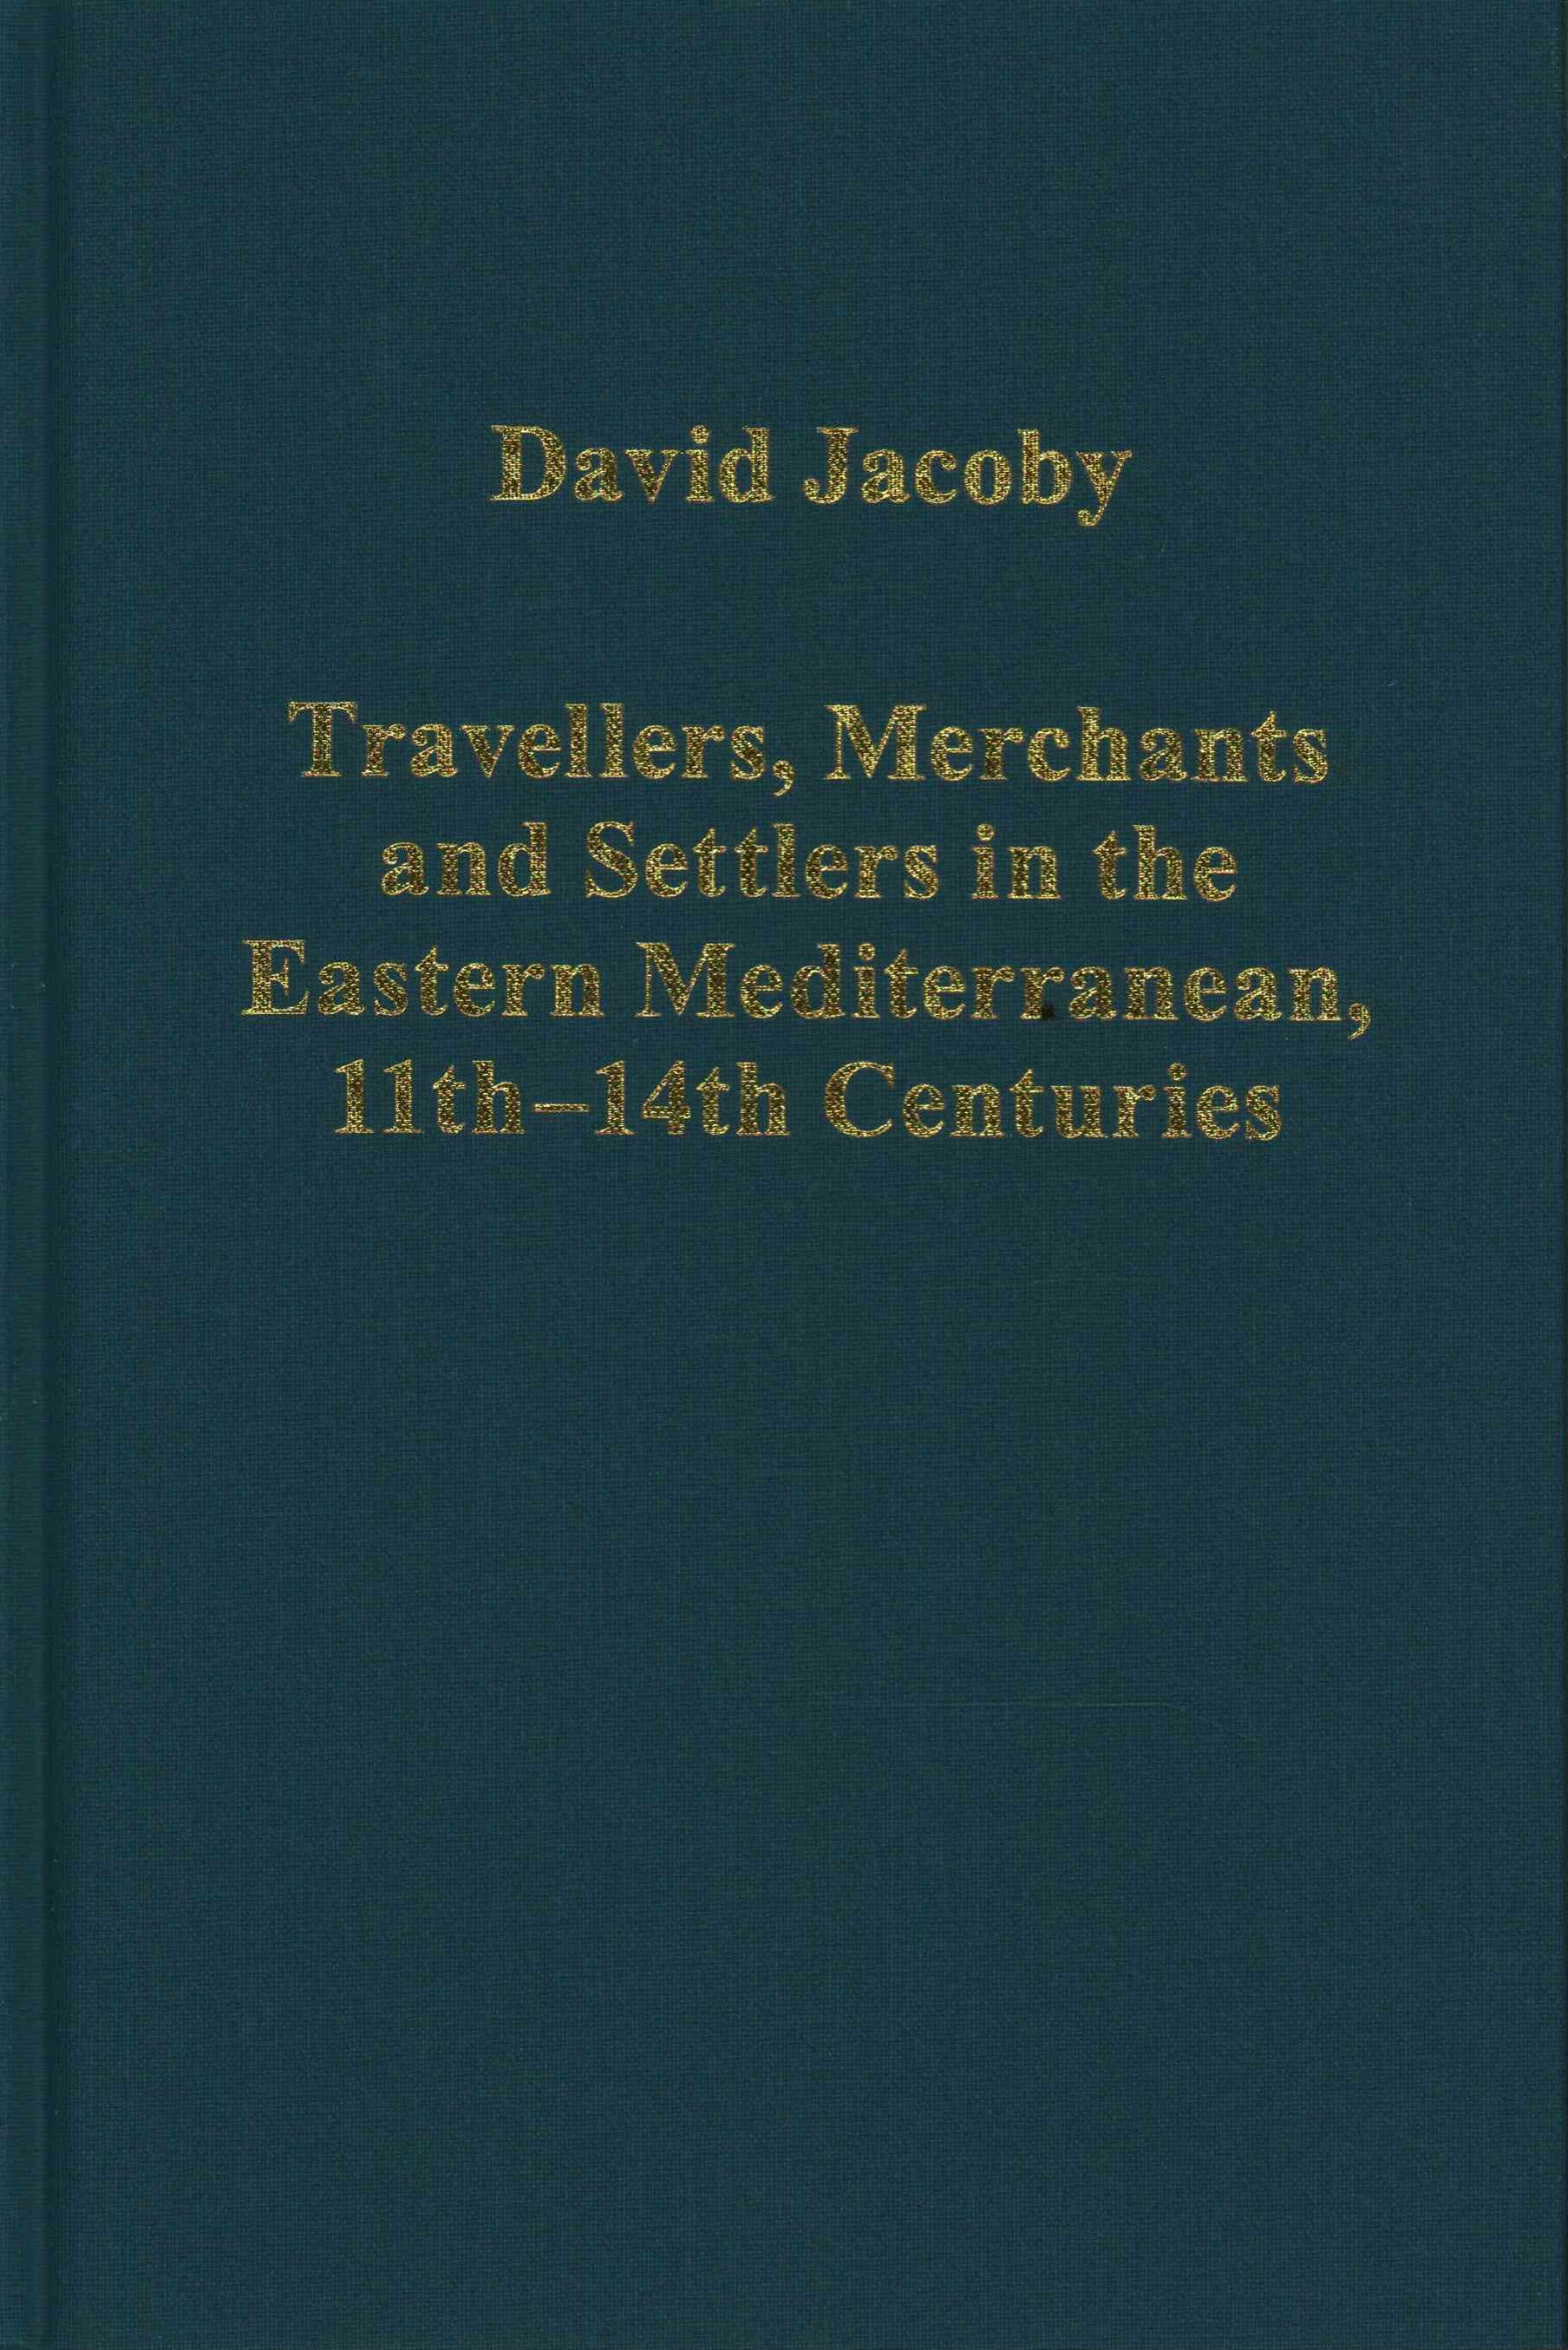 Travellers, Merchants and Settlers in the Eastern Mediterranean, 11th-14th Centuries